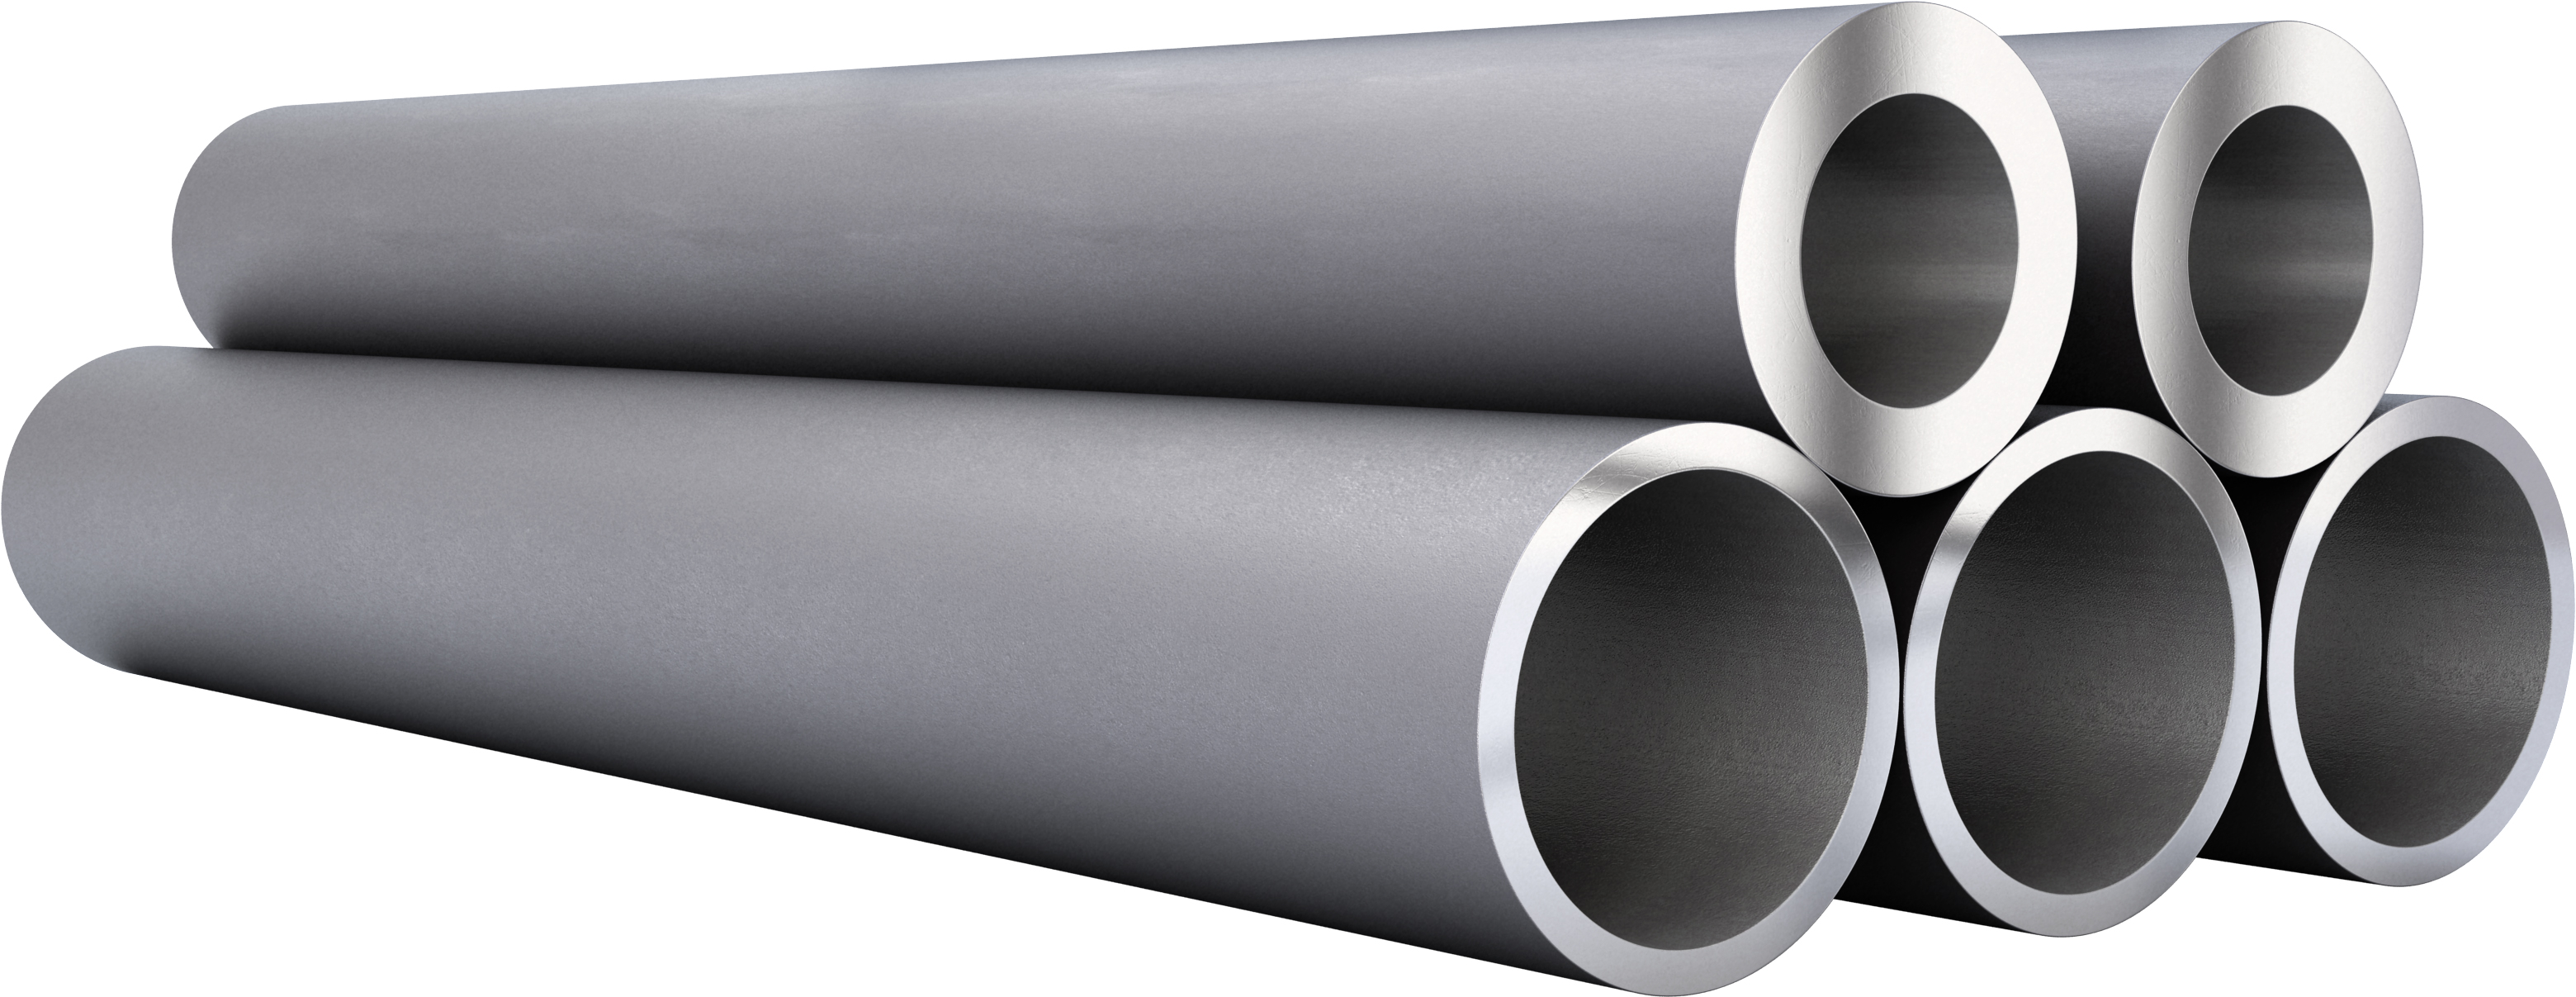 Sandvik 253 Ma High Temperature Stainless Steel Materials Pipa Stenlis Tubes